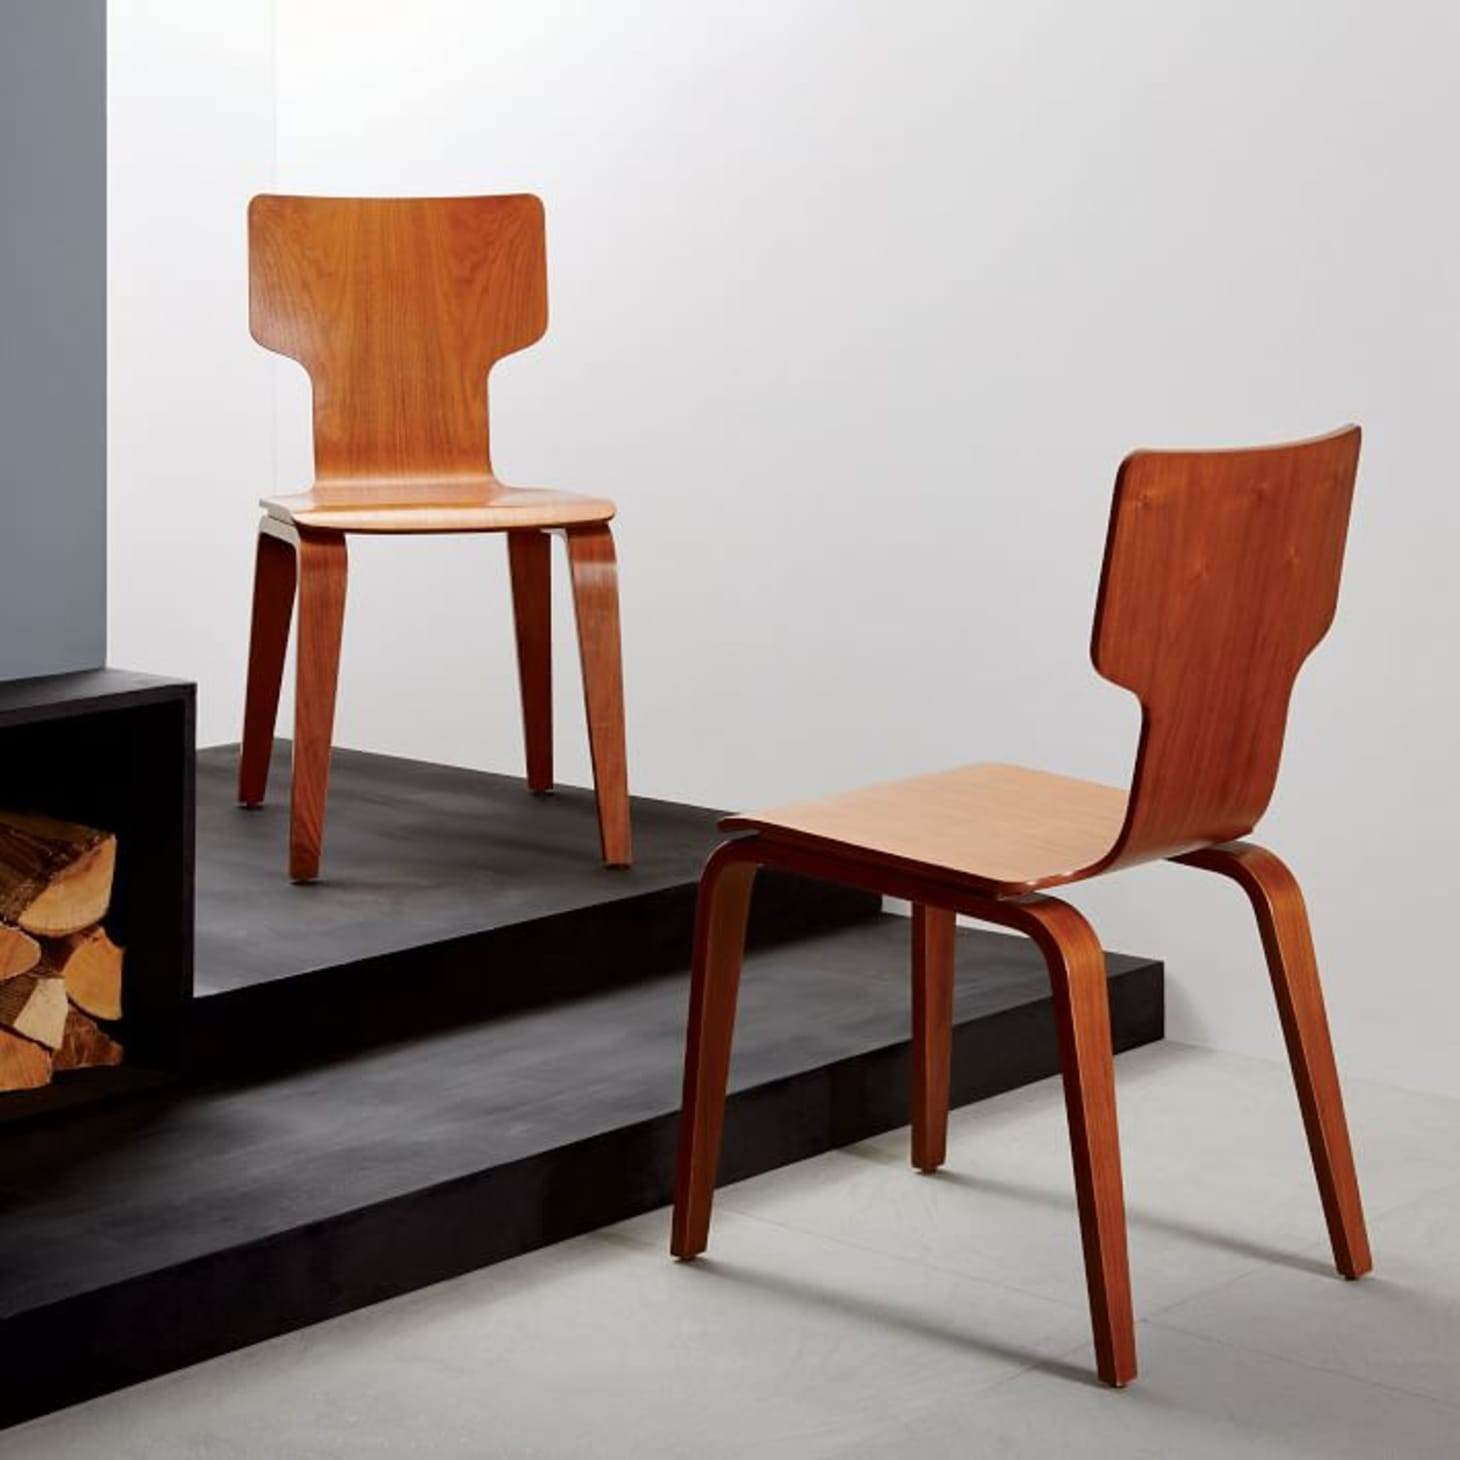 Miraculous The 10 Best Dining Chairs Under 100 Apartment Therapy Caraccident5 Cool Chair Designs And Ideas Caraccident5Info